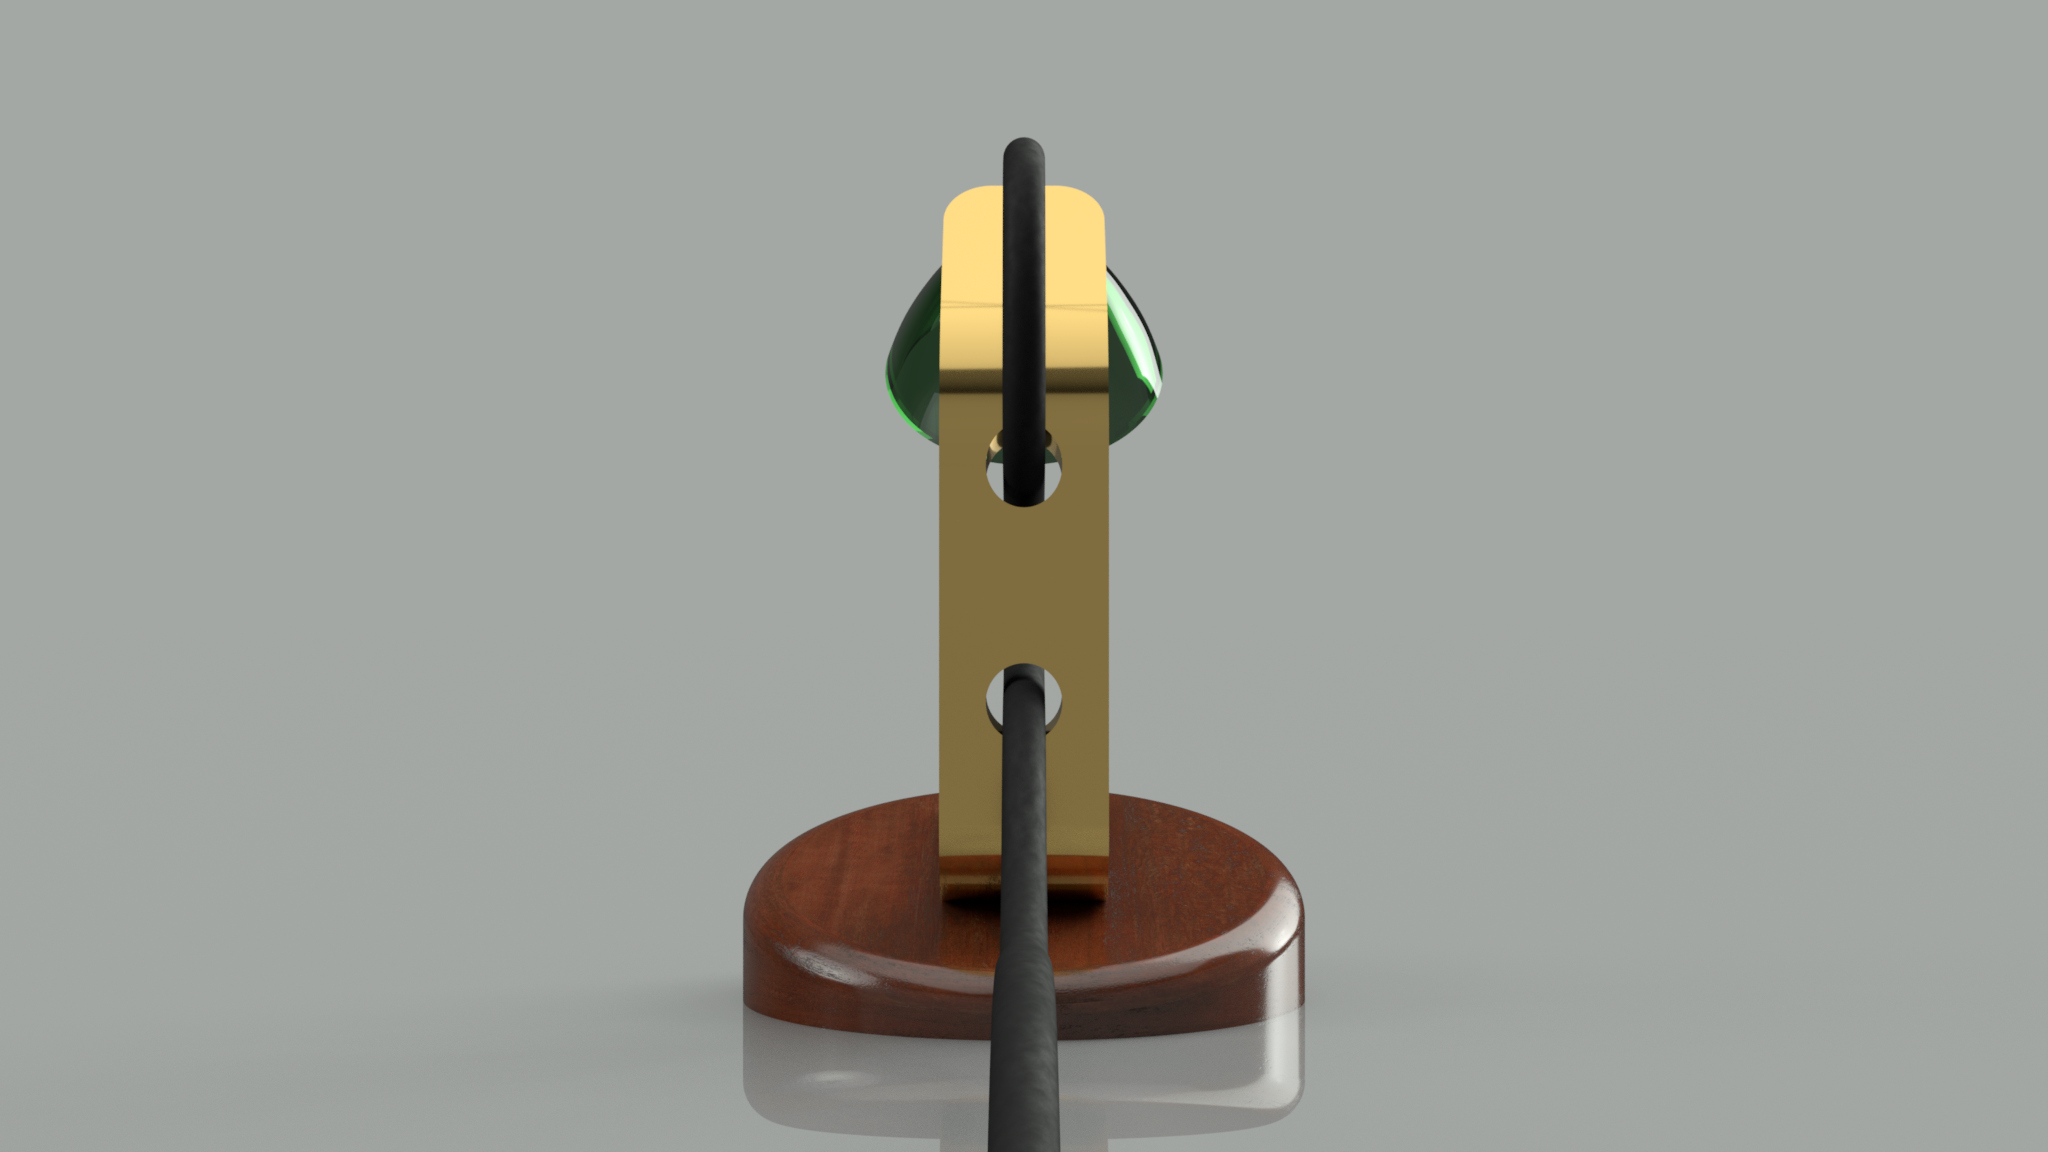 Lamp-f3d-2015-may-07-04-28-18pm-000-front-3500-3500